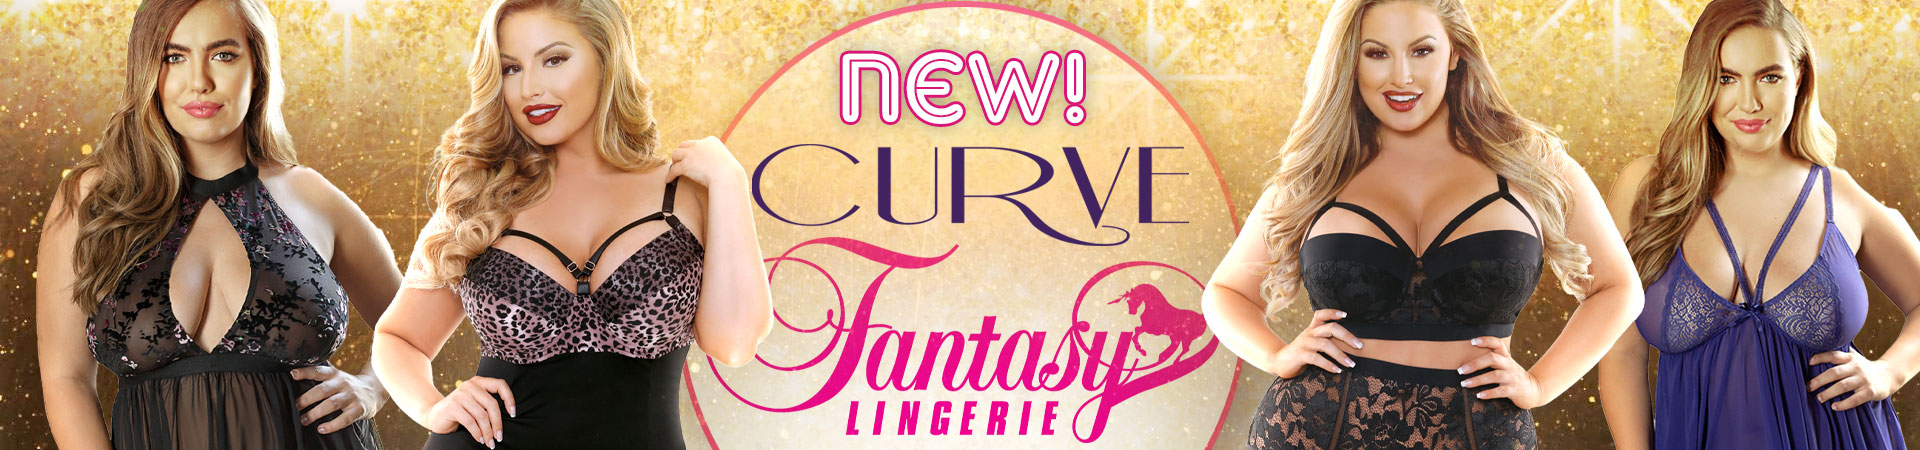 New Curve Fantasy Lingerie